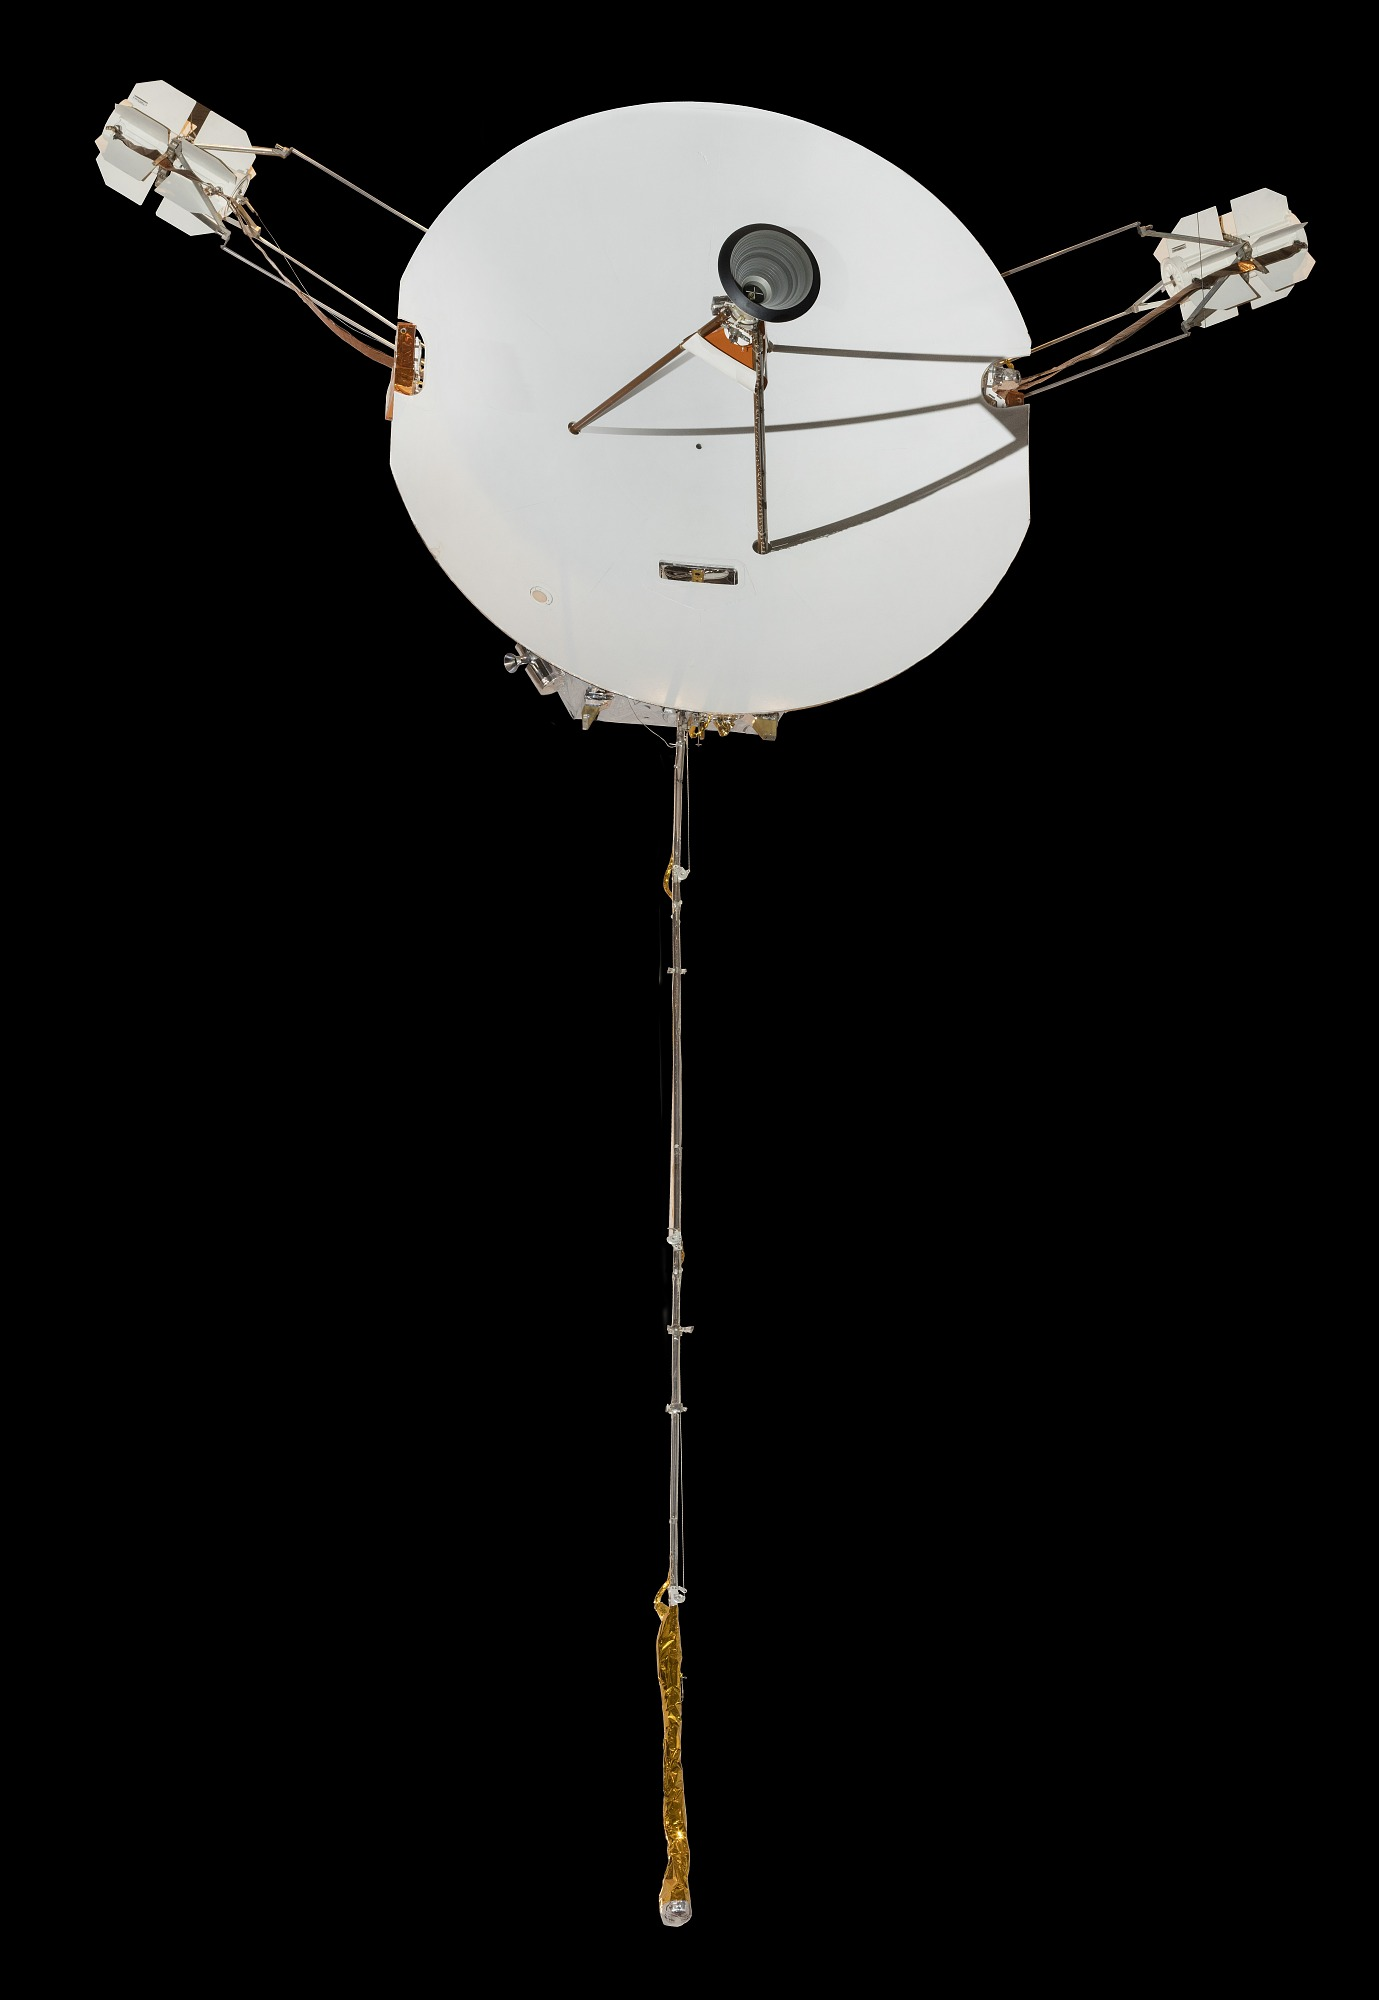 Image of : Pioneer 10 / 11, reconstructed full-scale mock-up